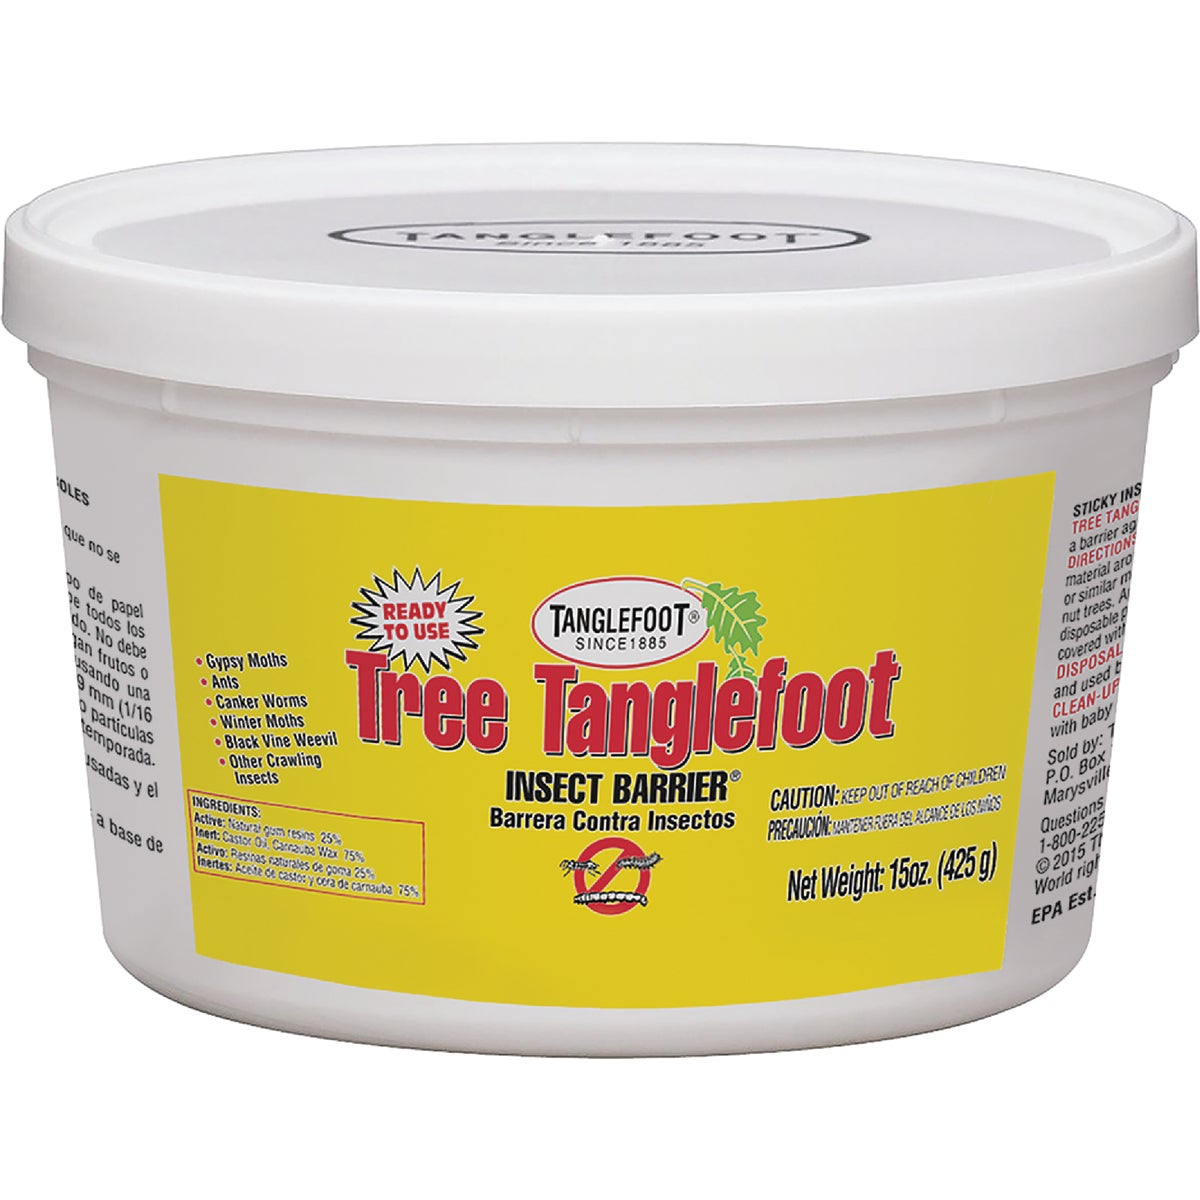 15OZ TANGLEFOOT TREE - 300000625 by Contech Enterprises